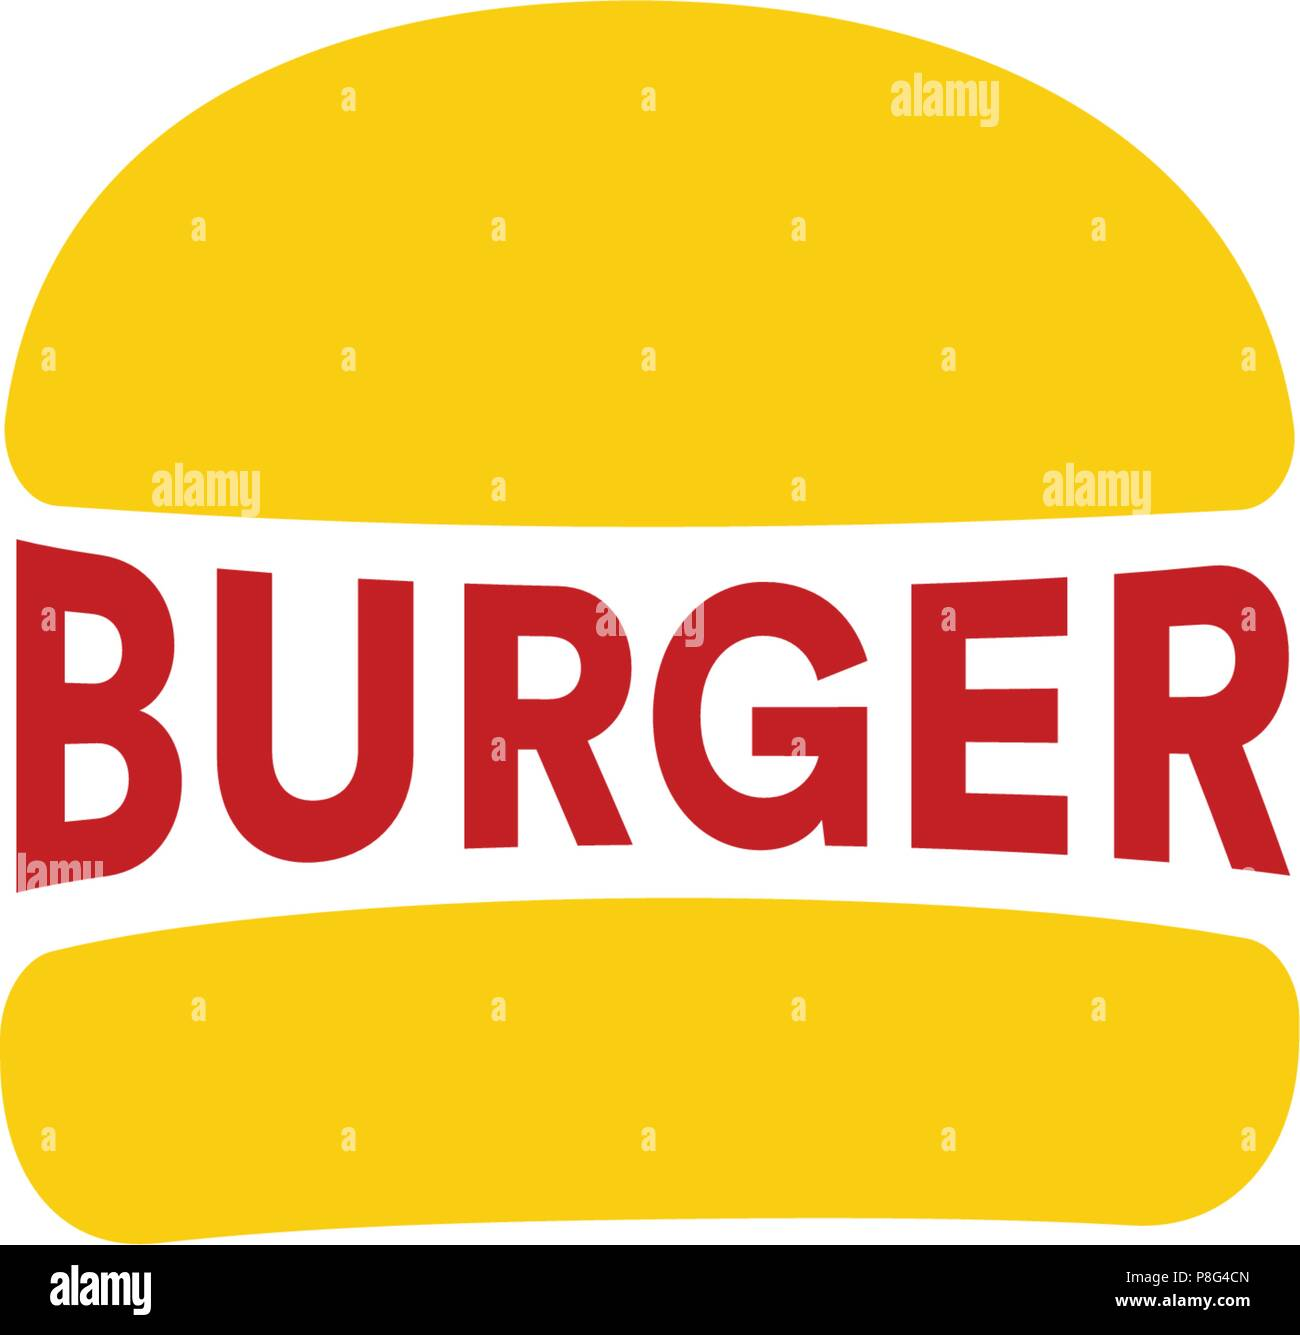 Big Burger Restaurant Logo Template Yellow Loaf And Red Sousage Or Burger Text Simple Flat Abstract Vector Illustrations Fast Food Icon Stock Vector Image Art Alamy